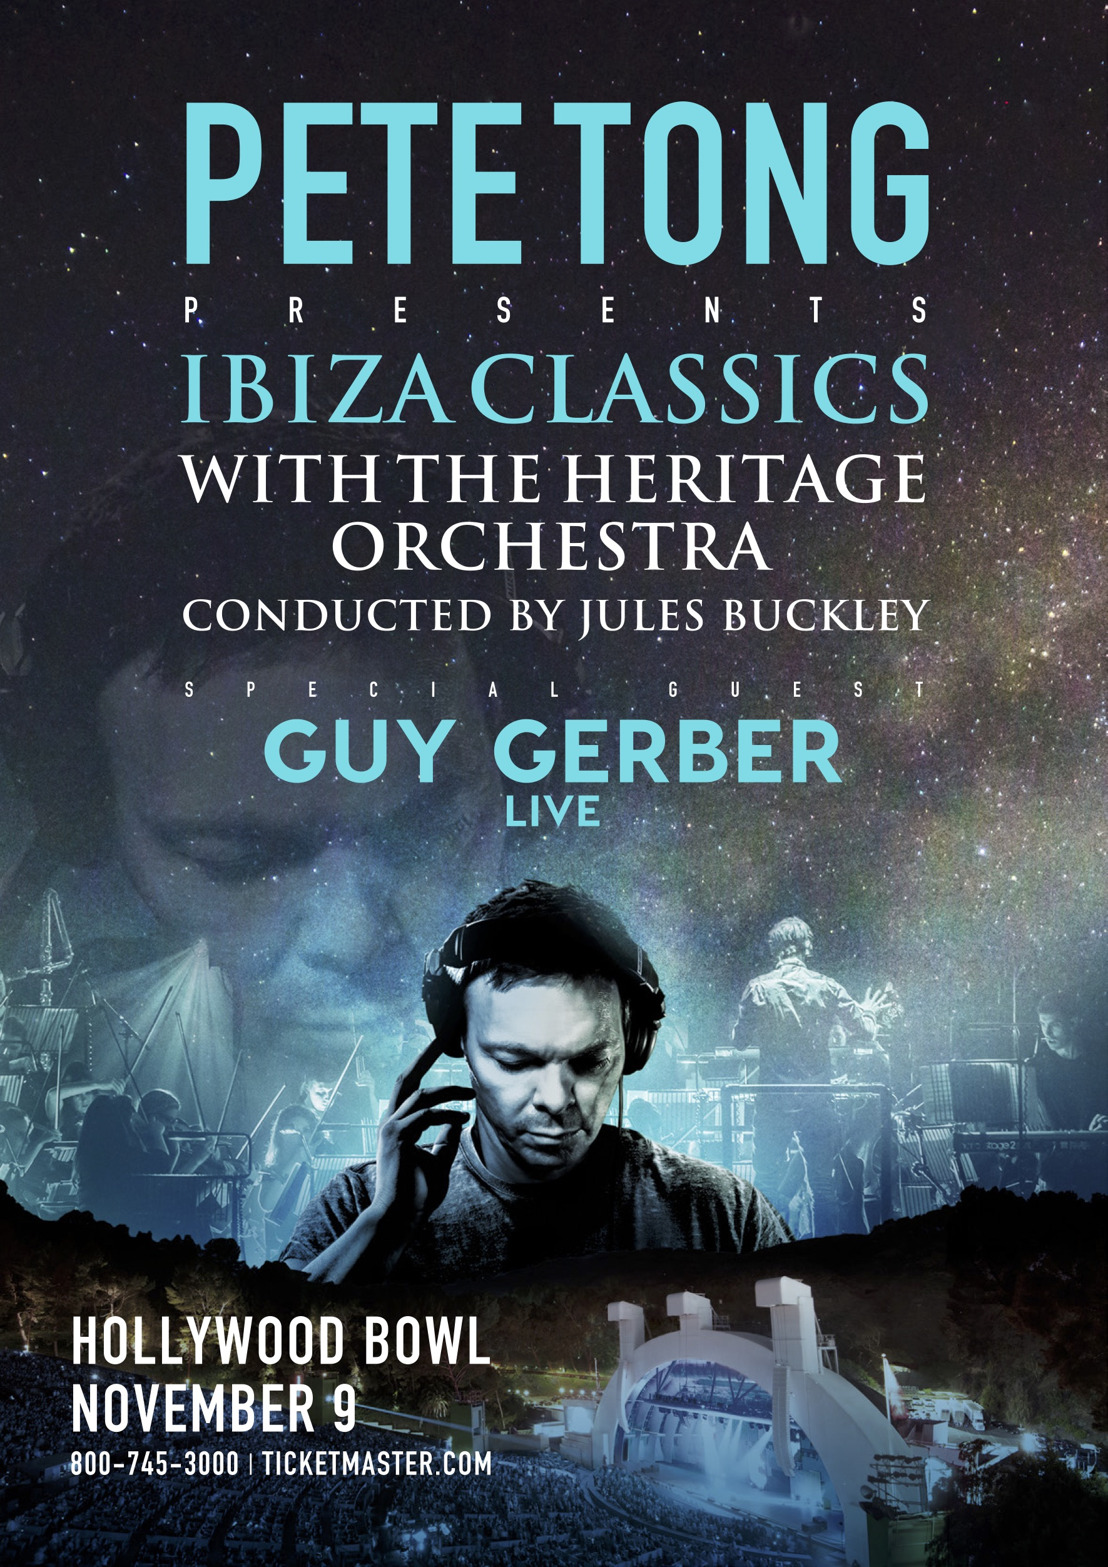 PETE TONG ANNOUNCES GUY GERBER AS SUPPORT FOR IBIZA CLASSICS AT THE HOLLYWOOD BOWL